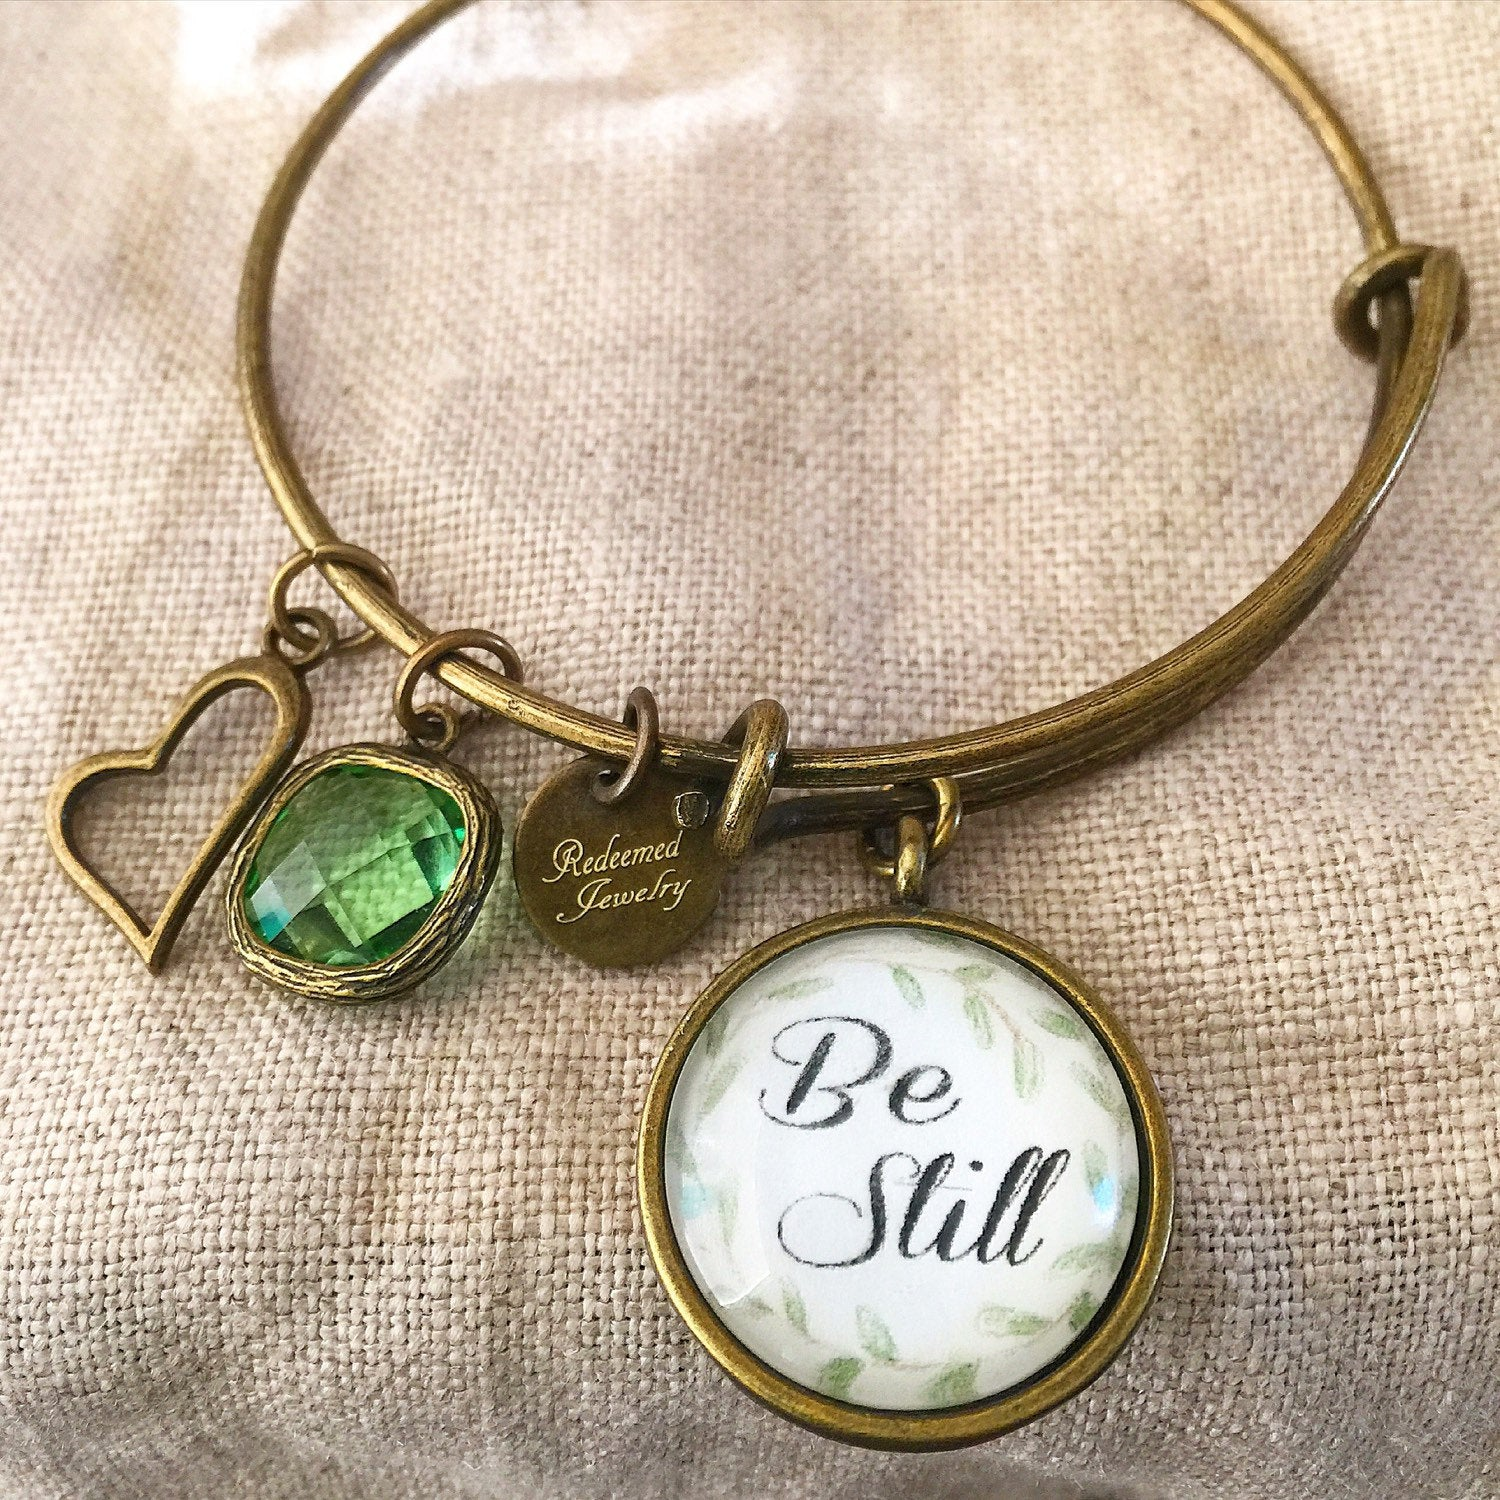 Be Still Bangle Bracelet - Redeemed Jewelry